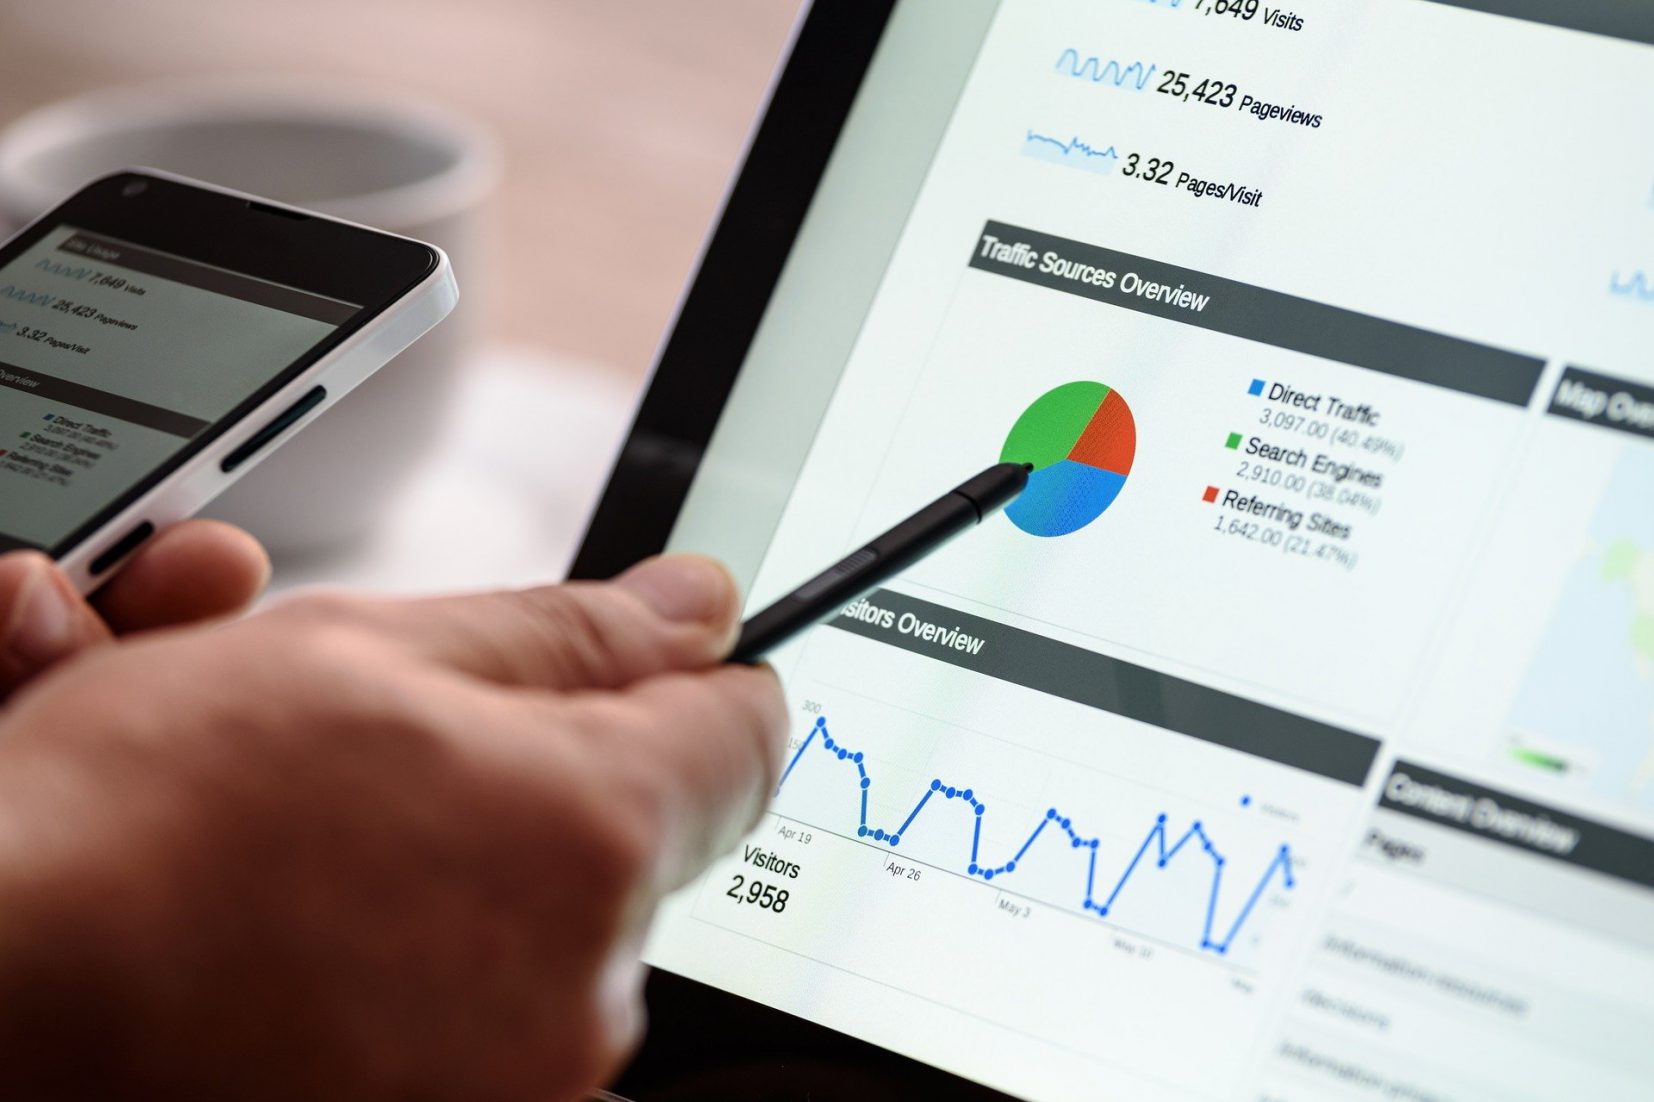 Seo tips with statistics to boost traffic